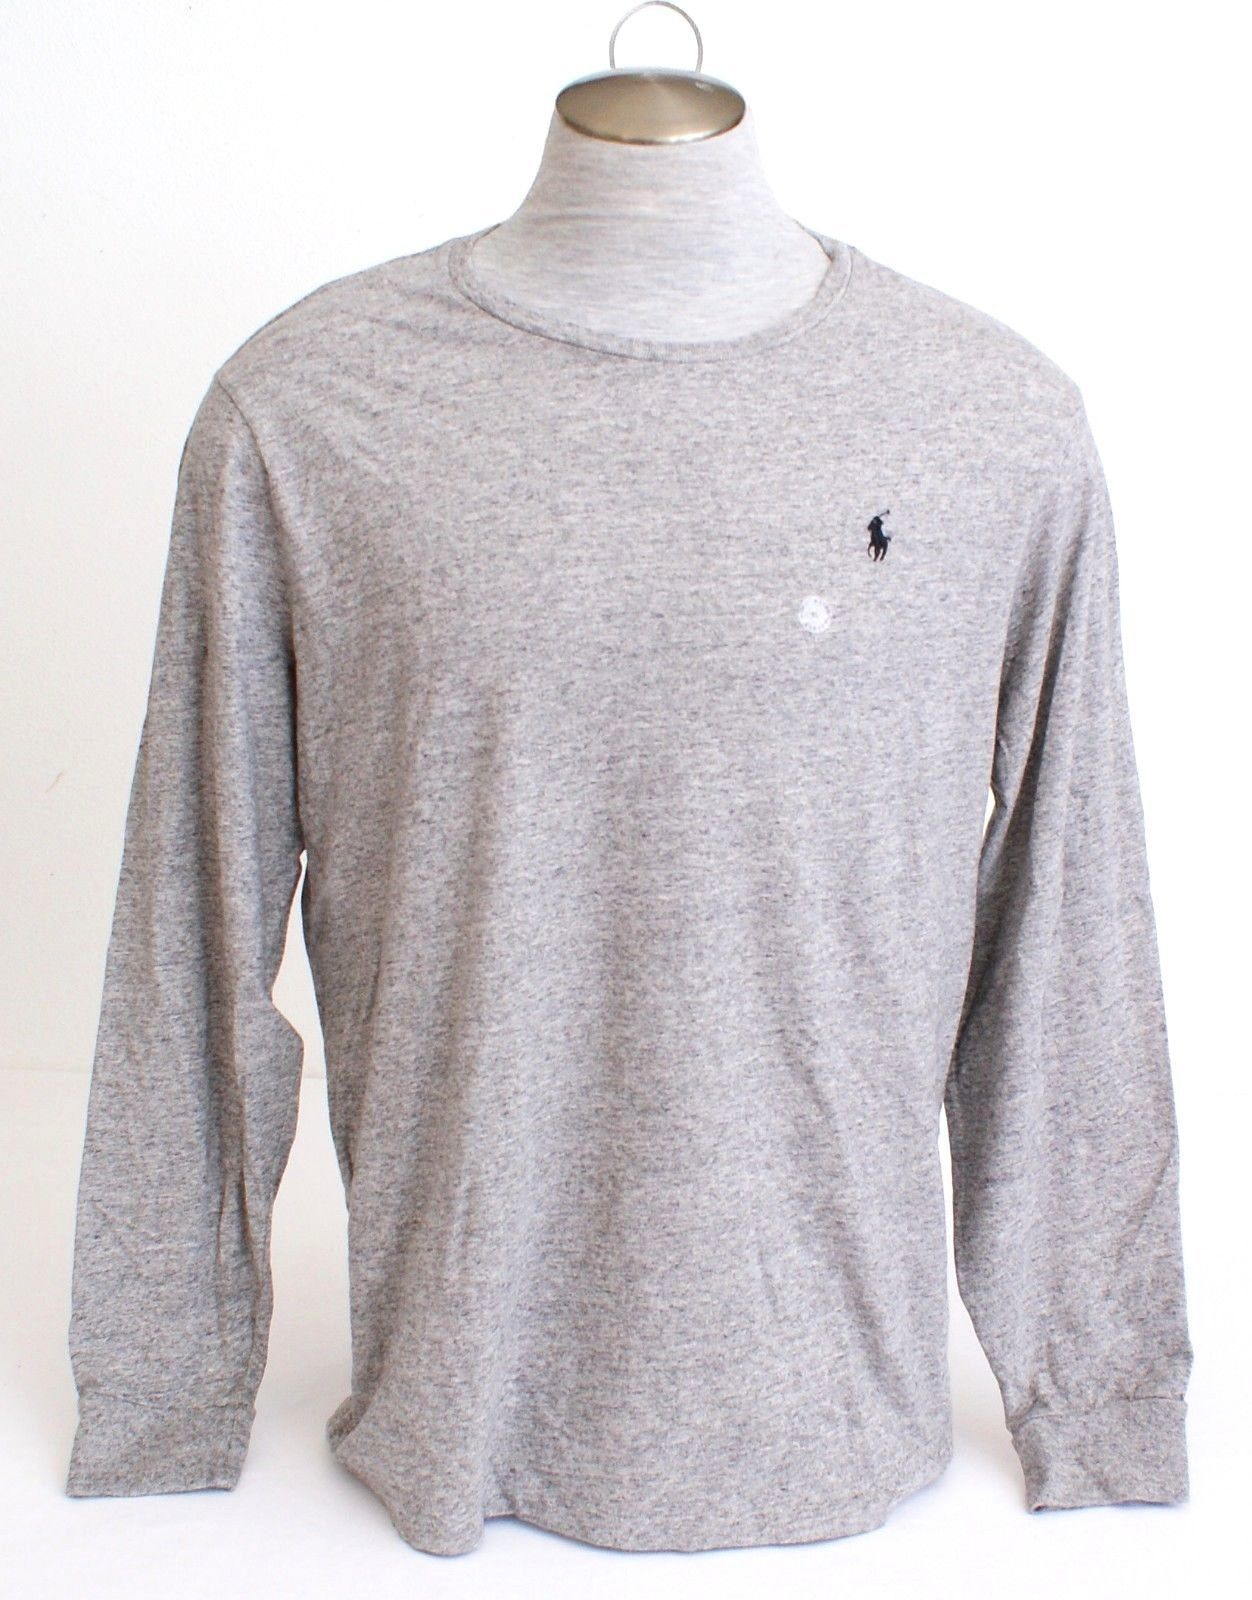 POLO by Ralph Lauren Long Sleeve Black T-Shirt With White Pony ~NWT~